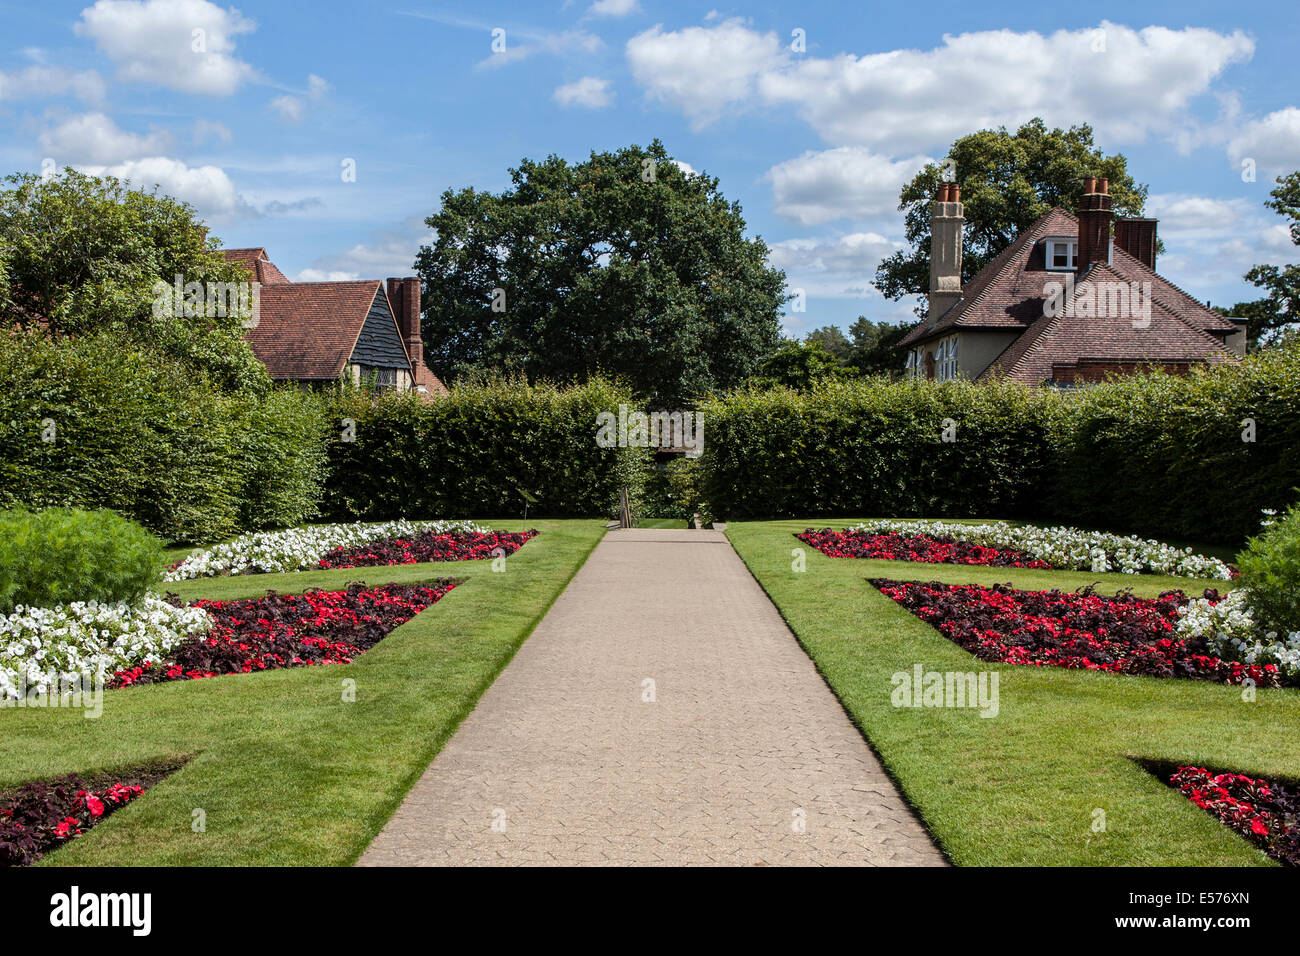 Symmetrical red and white flower beds and bedding plants along a path in Summer at Wisley RHS Gardens, Surrey - Stock Image